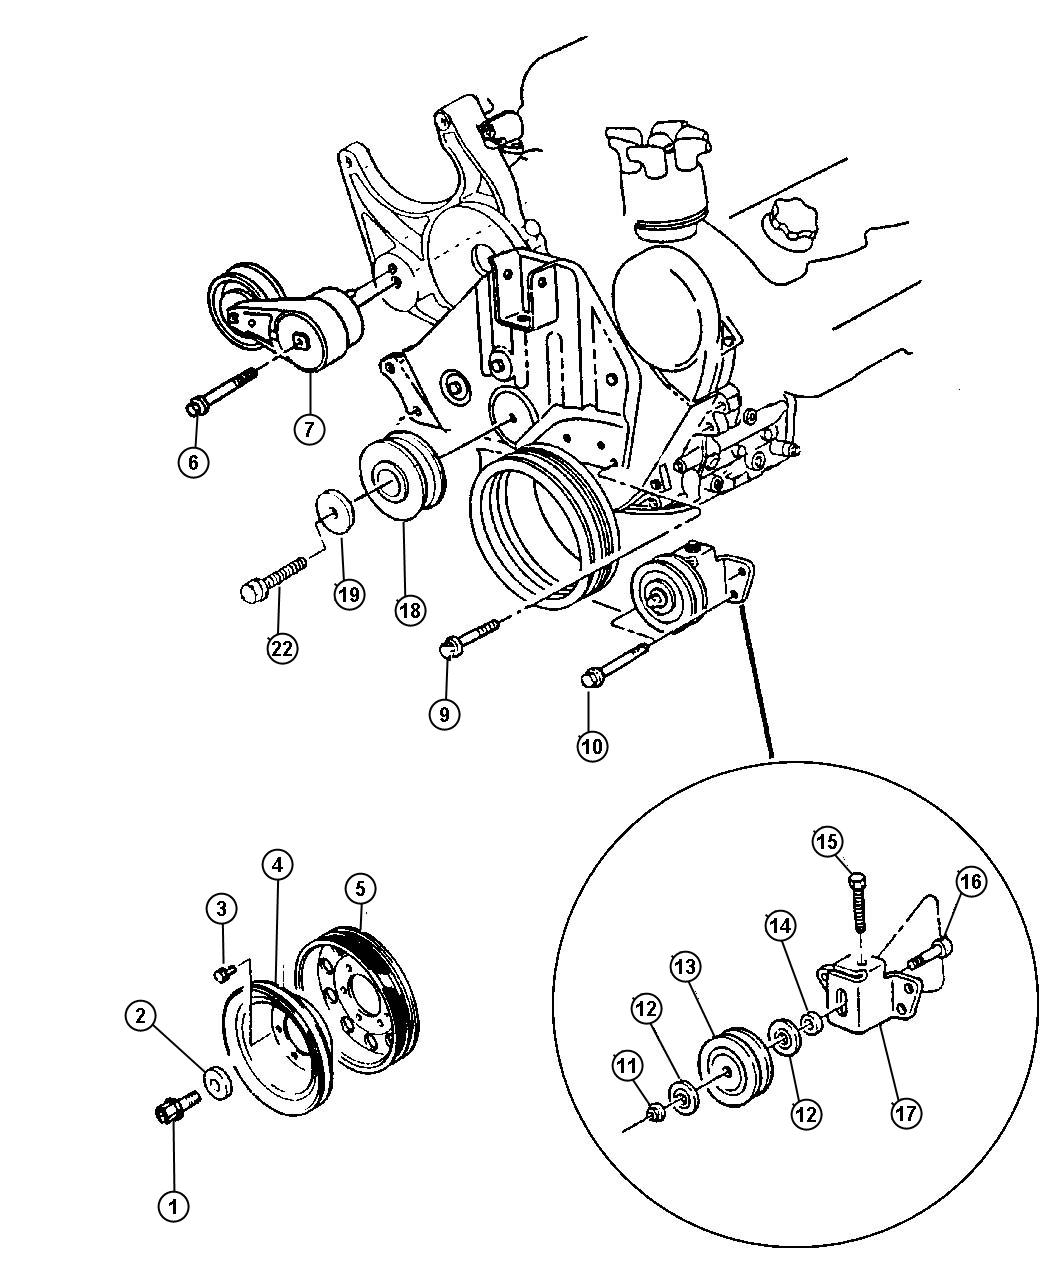 1998 plymouth voyager engine diagram